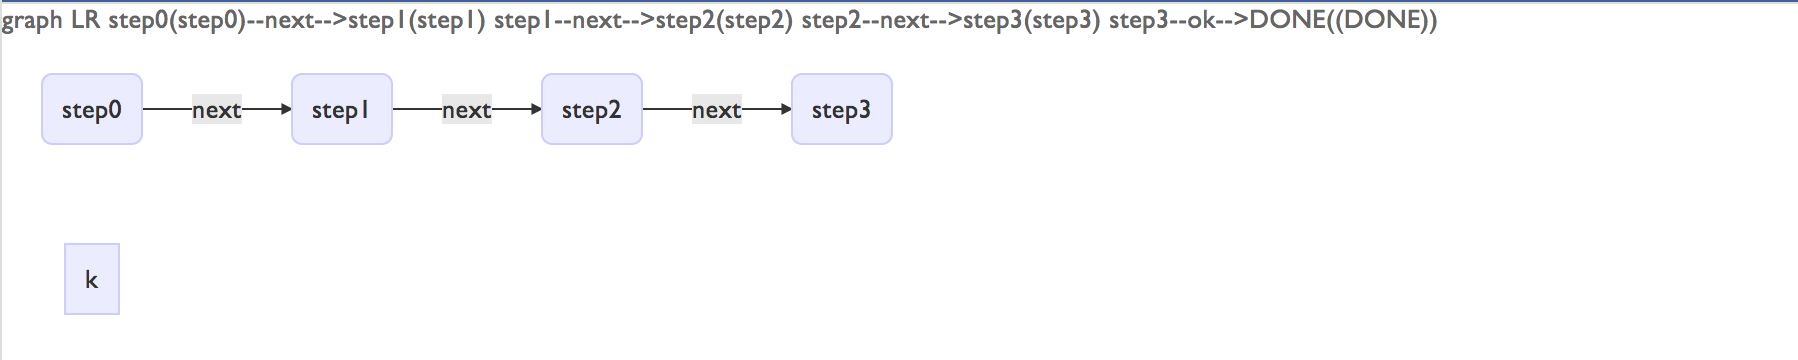 flowchart display error with lowercase o in link text